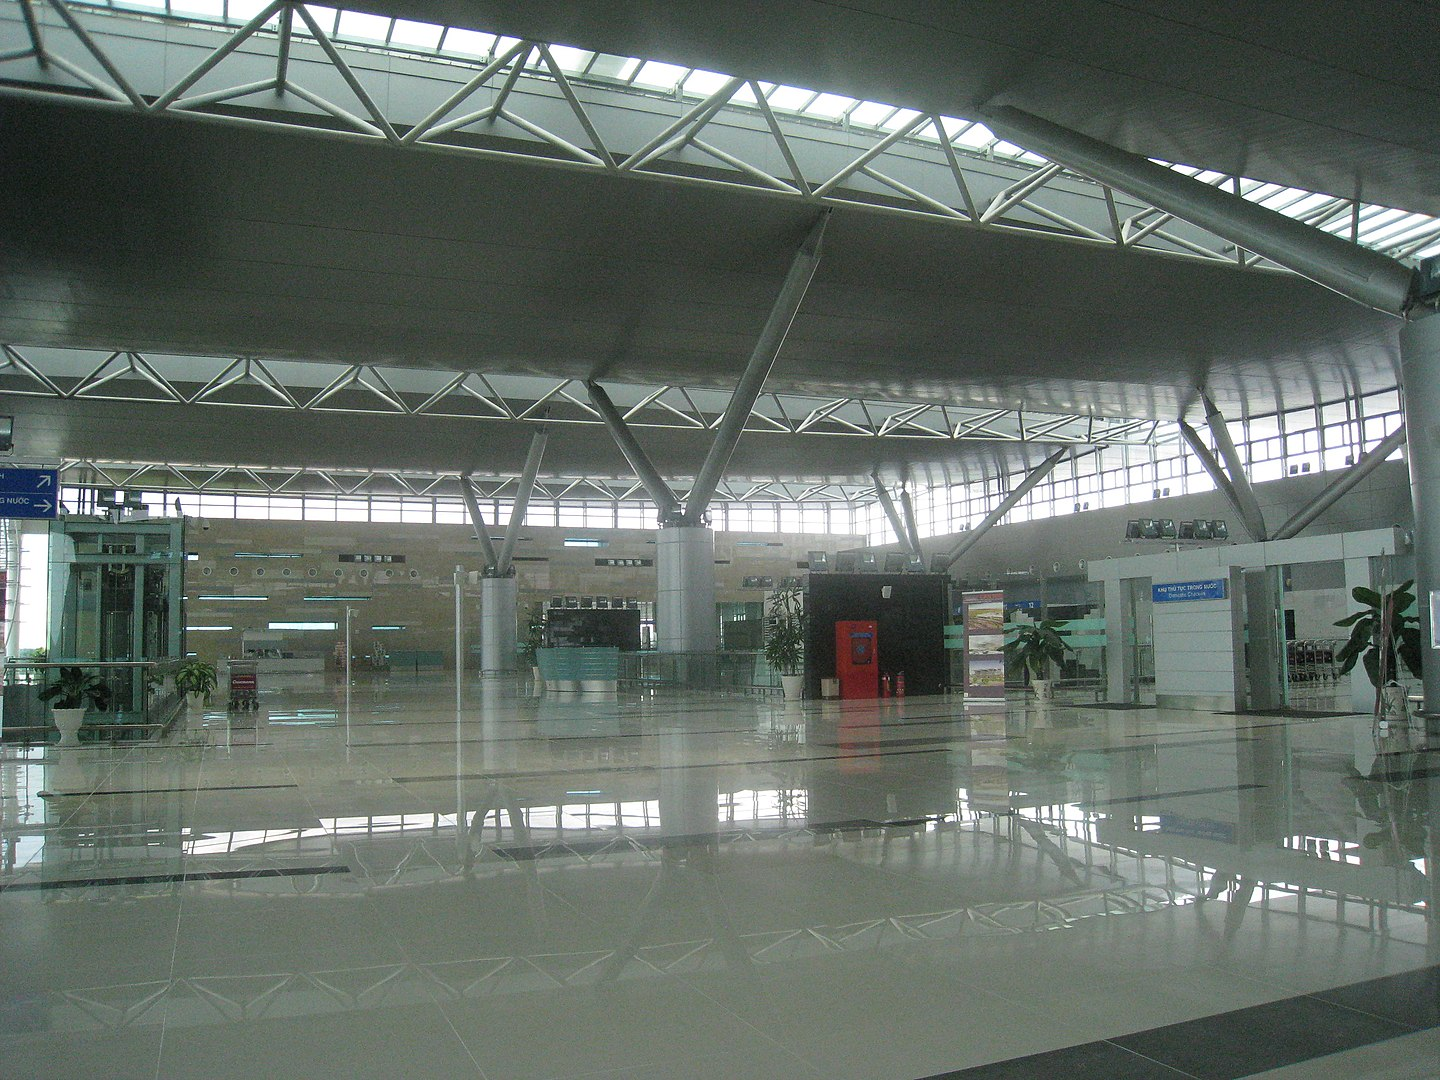 Image of an empty terminal in the Can Tho International Airport in Vietnam